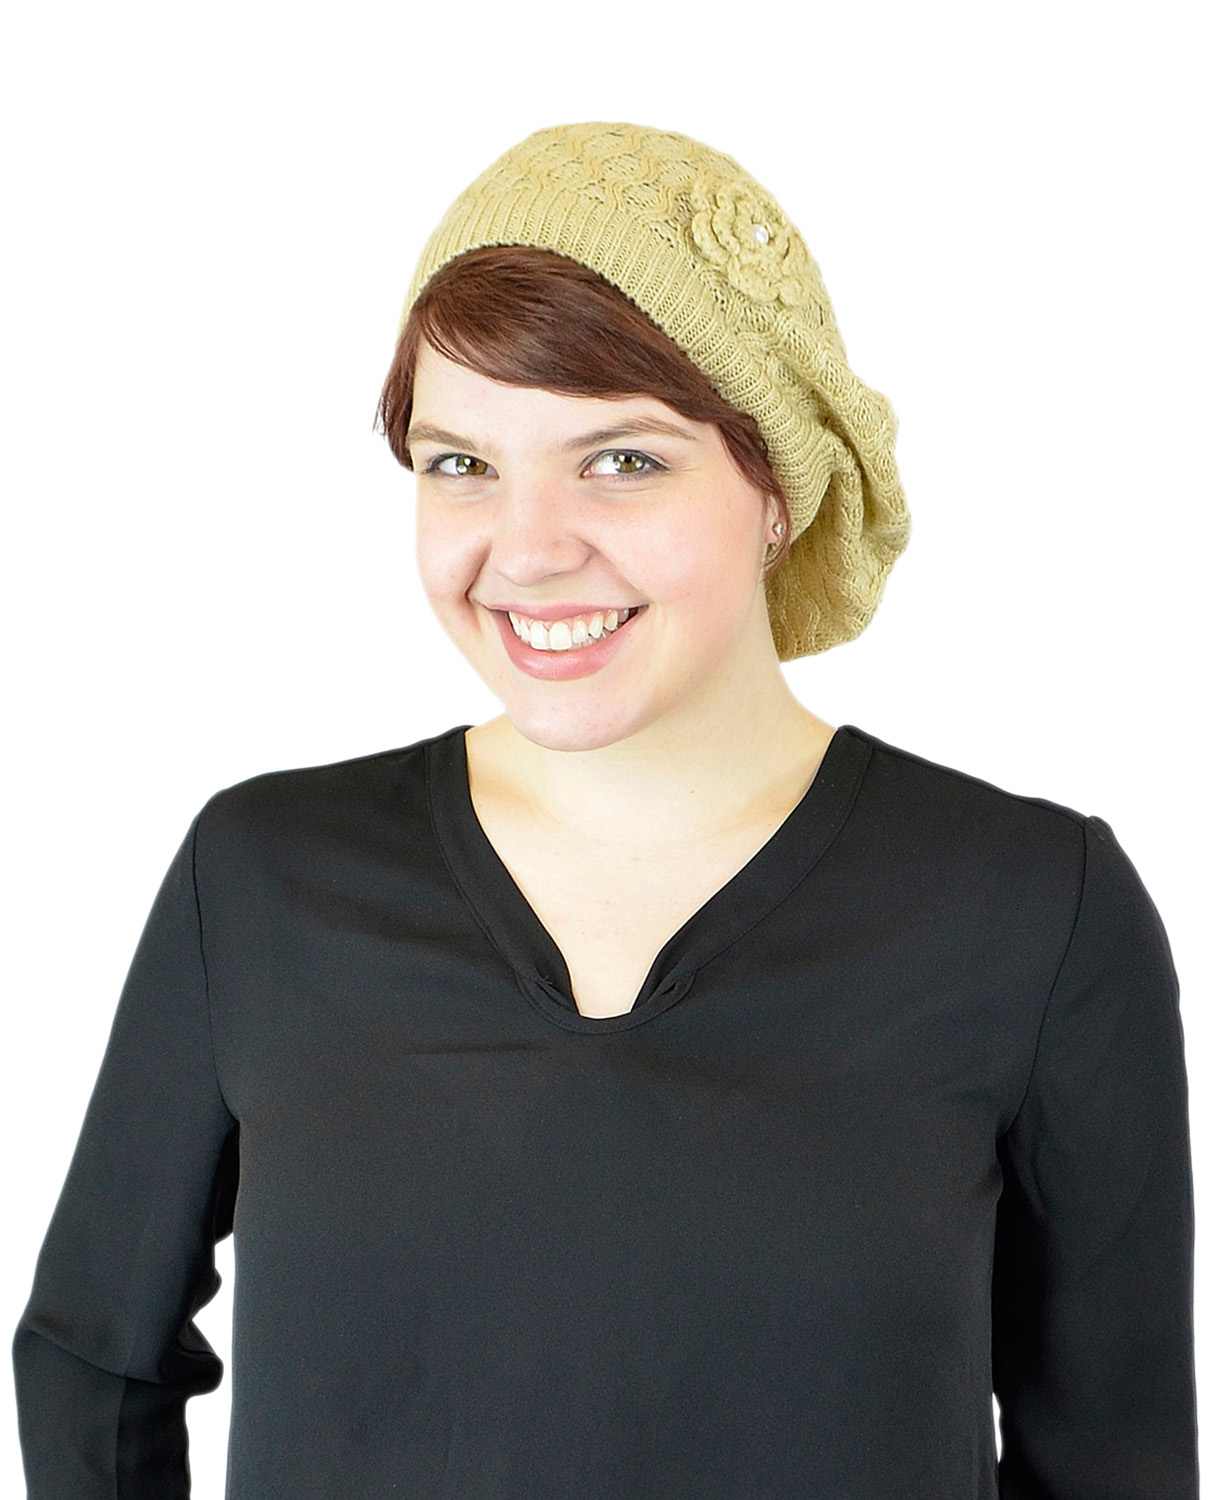 Belle Donne - Women's Mesh Crocheted Accented Stretch Beret Hat- Tan 4081